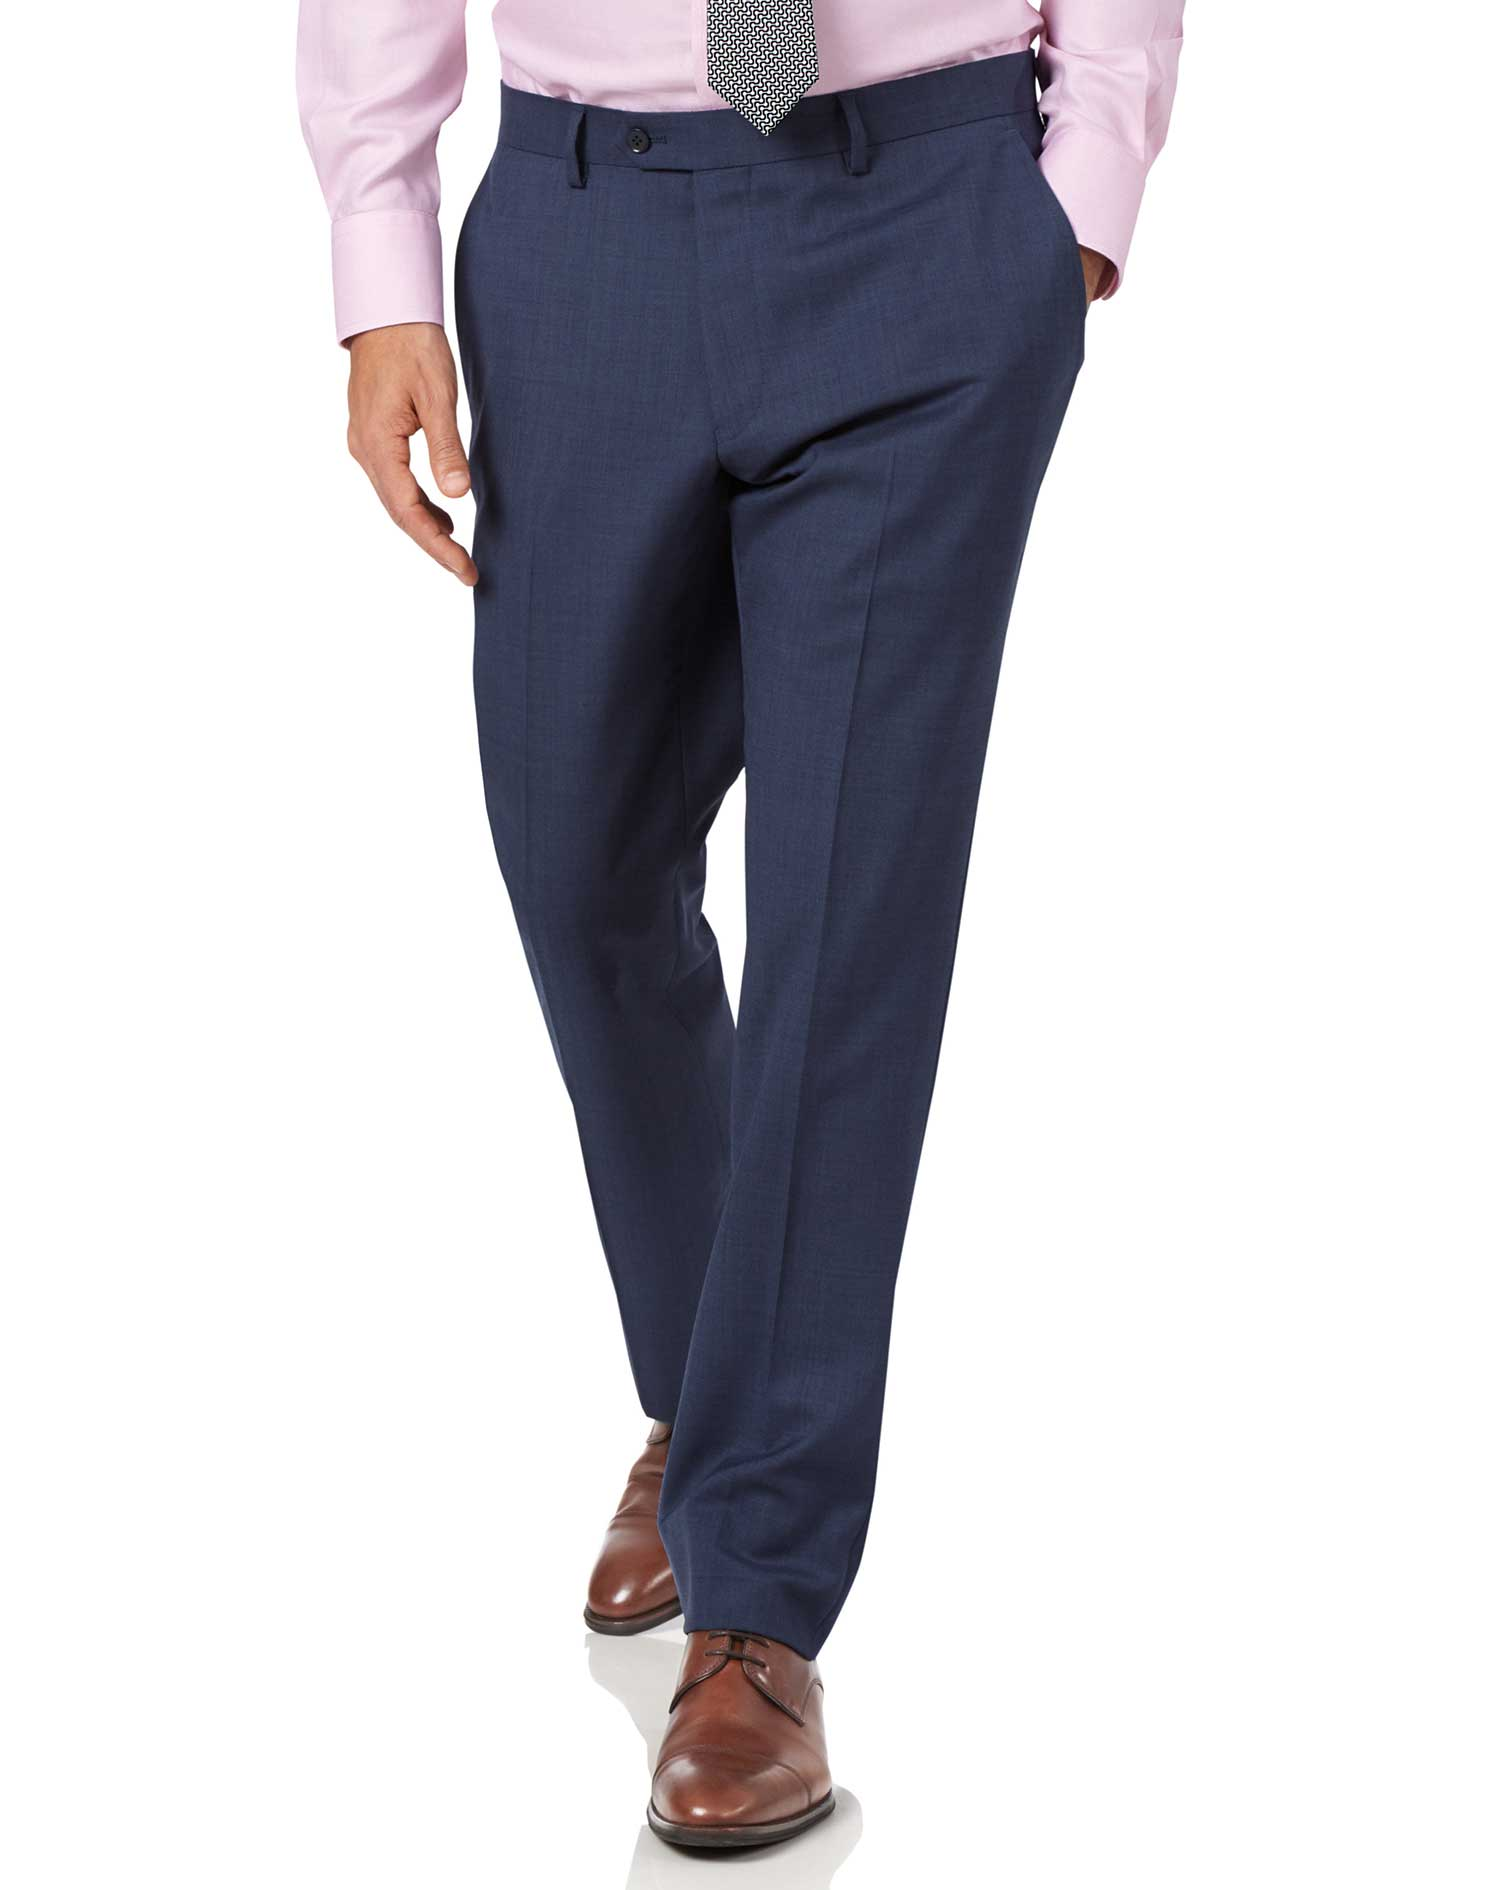 Image of Charles Tyrwhitt Airforce Blue Slim Fit Sharkskin Travel Suit Trousers Size W76 L97 by Charles Tyrwhitt